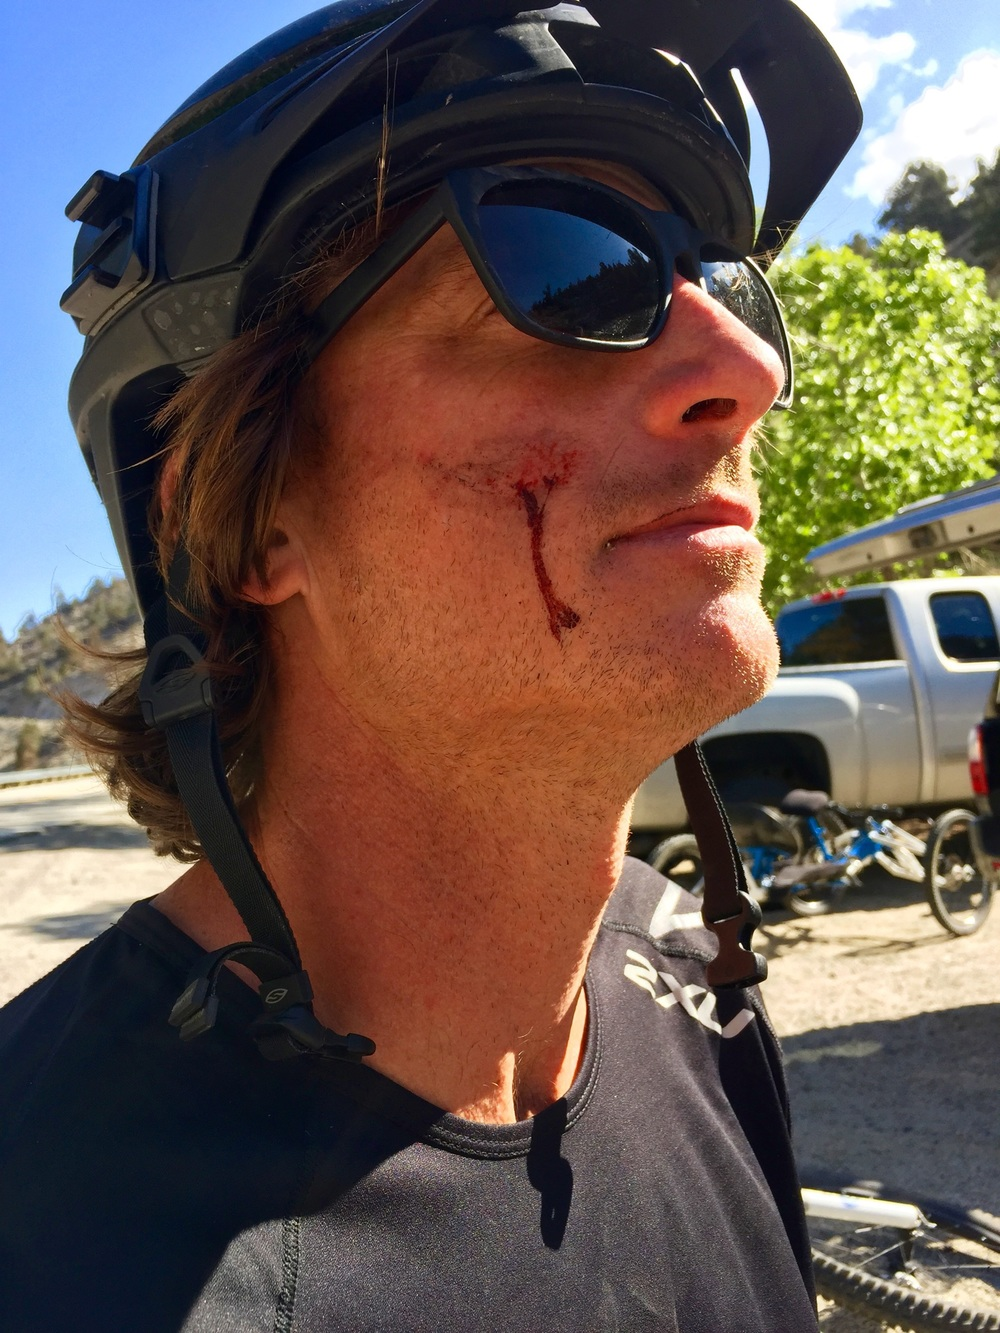 I may or may not have hit a tree. Photo by Colin Farrell(@oppcreative)